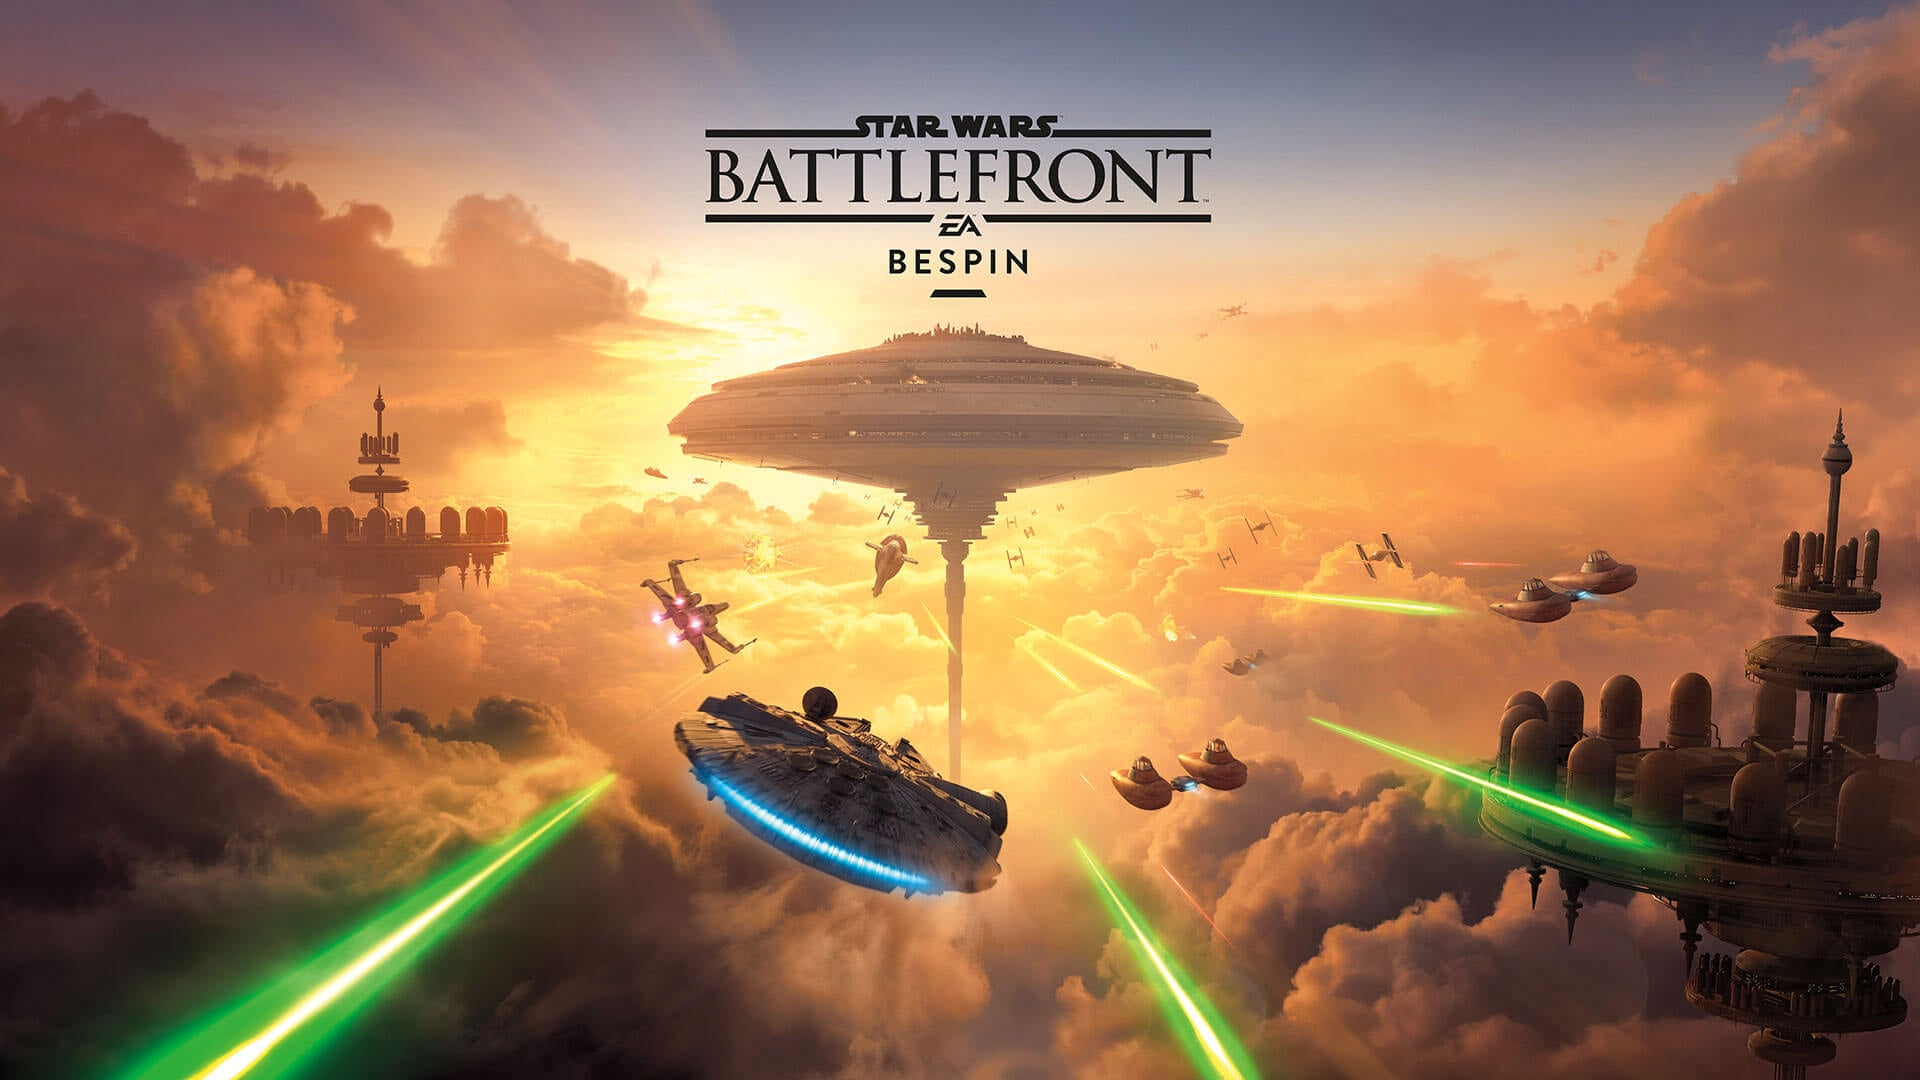 Star Wars Battlefront DLC Joins EA Access; Battlefield 1 and ... Star Wars Battlefront Maps on star wars: empire at war, star wars imperial ships, star wars empire army, star wars battlefront: elite squadron, star wars imperial army, star wars: starfighter, star wars: knights of the old republic, star wars: the clone wars, star wars battle maps, star wars ships inside, stronghold 1 maps, star wars ship blueprints, star wars ships and vehicles, star wars episode iii: revenge of the sith, star wars game maps, star wars: galactic battlegrounds, battlefront 2 custom maps, star wars: bounty hunter, star wars: the force unleashed, gears of war 1 maps, star wars: battlefront iii, mercenaries 1 maps, star wars battlefield xbox 360, star wars imperial commando, star wars: dark forces, star wars kotor 2 maps, star wars memes, star wars: rogue squadron, star wars ship designs, star wars episode i: the phantom menace, star wars: the old republic, star wars all planets, star wars battlefront: renegade squadron, star wars jedi knight: jedi academy, star wars: battlefront ii, guild wars maps, star wars: republic commando, star wars city, star wars galaxies,